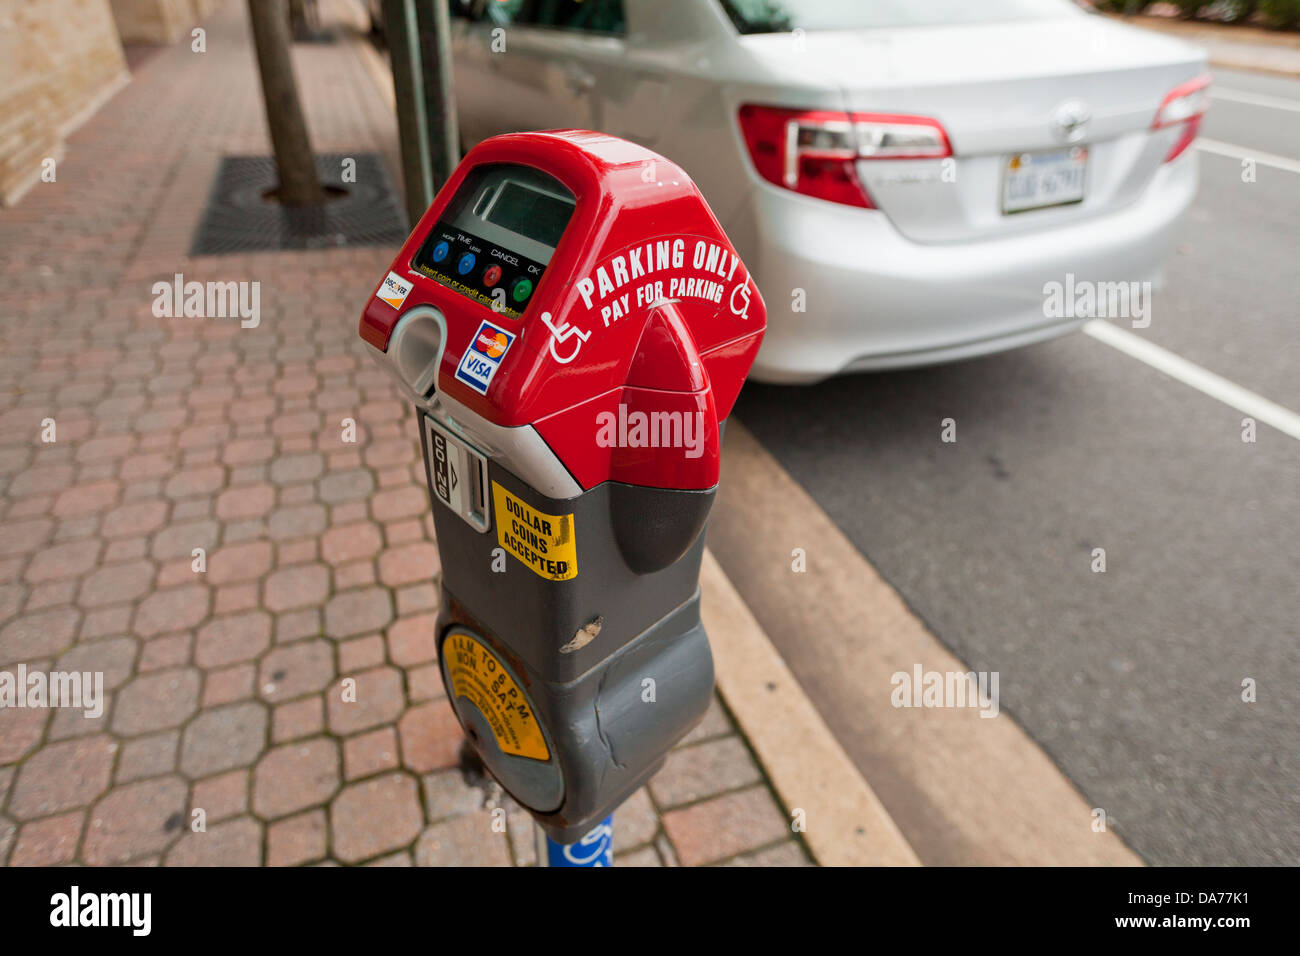 Disabled parking meter - Stock Image